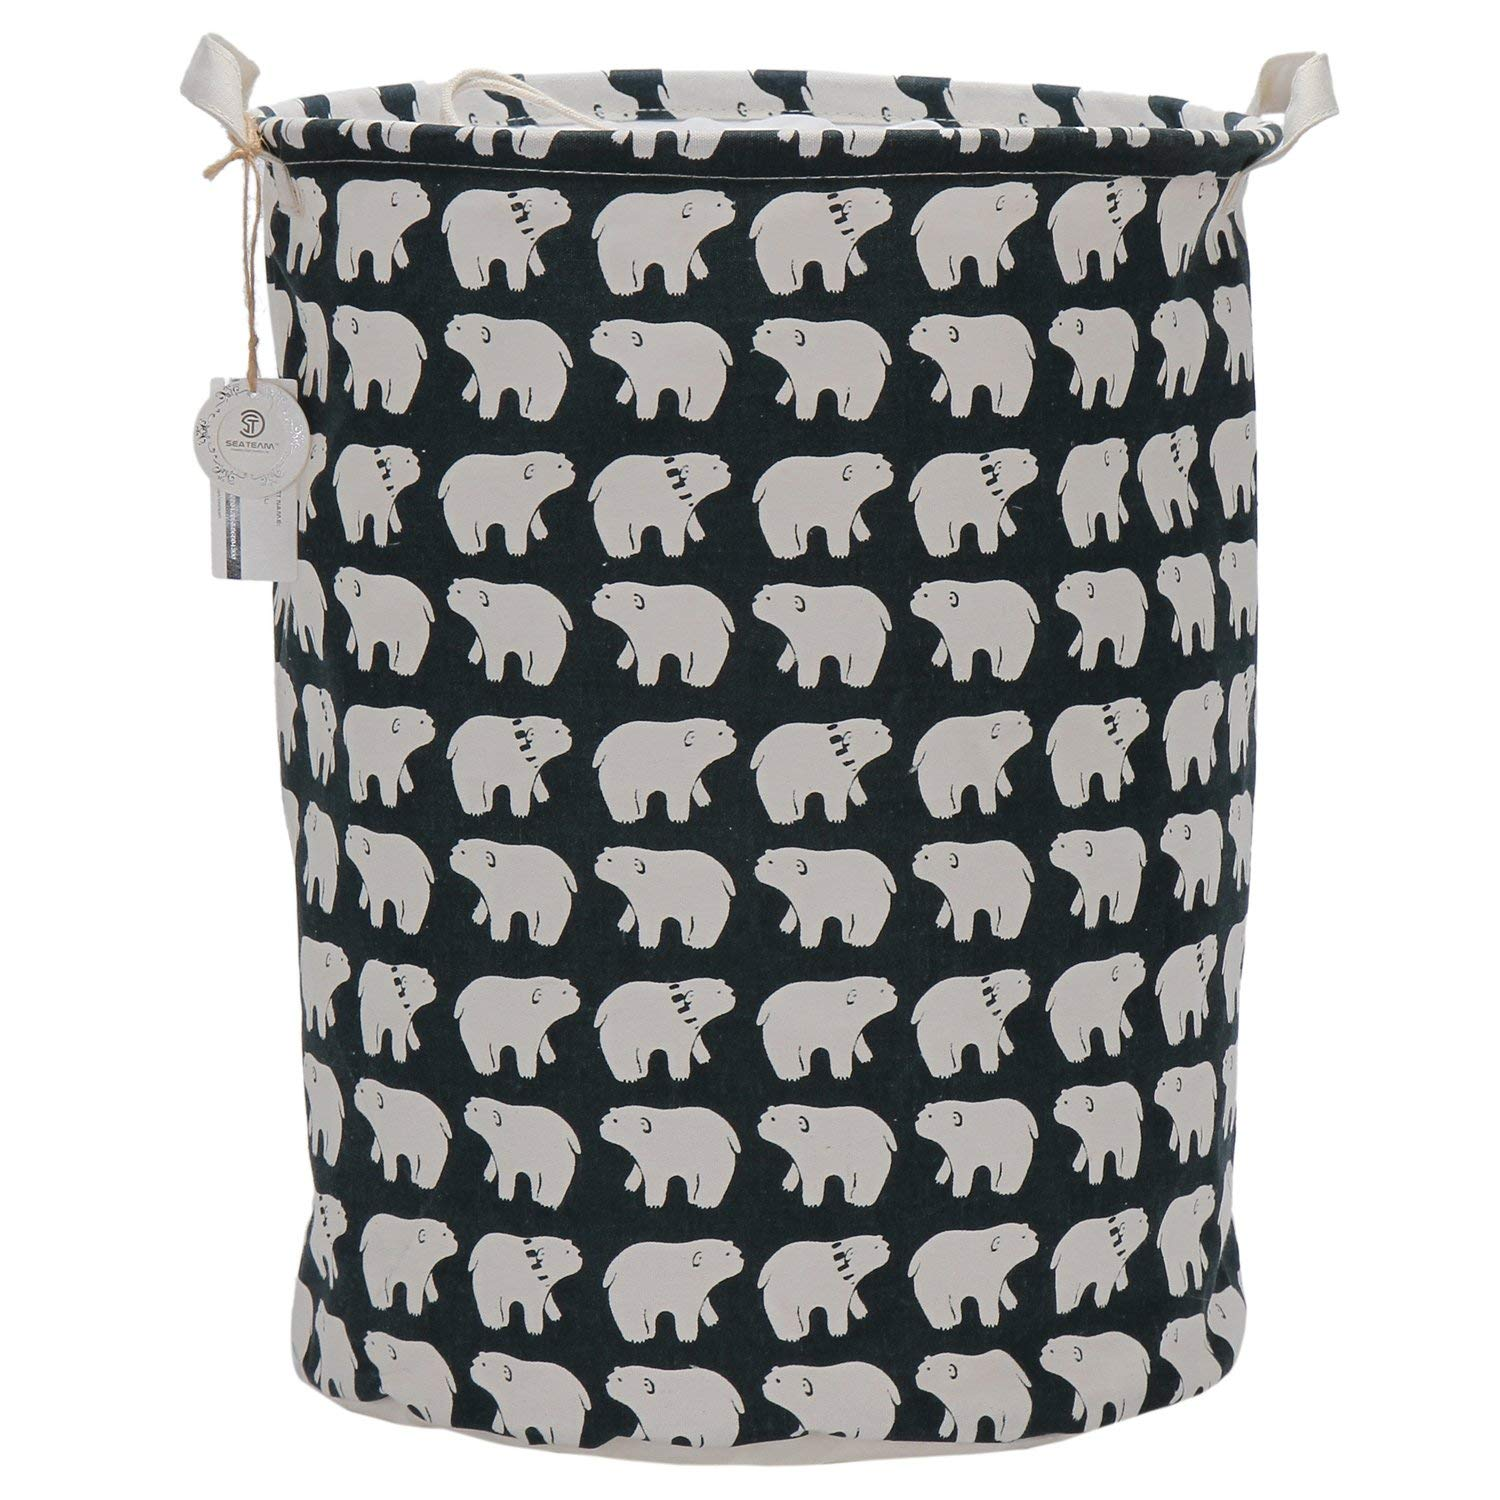 "Sea Team 19.7"" x 15.7"" Large Sized Folding Cylindric Waterproof Coating Canvas Fabric Laundry Hamper Storage Basket with Drawstring Cover, Polar Bear"